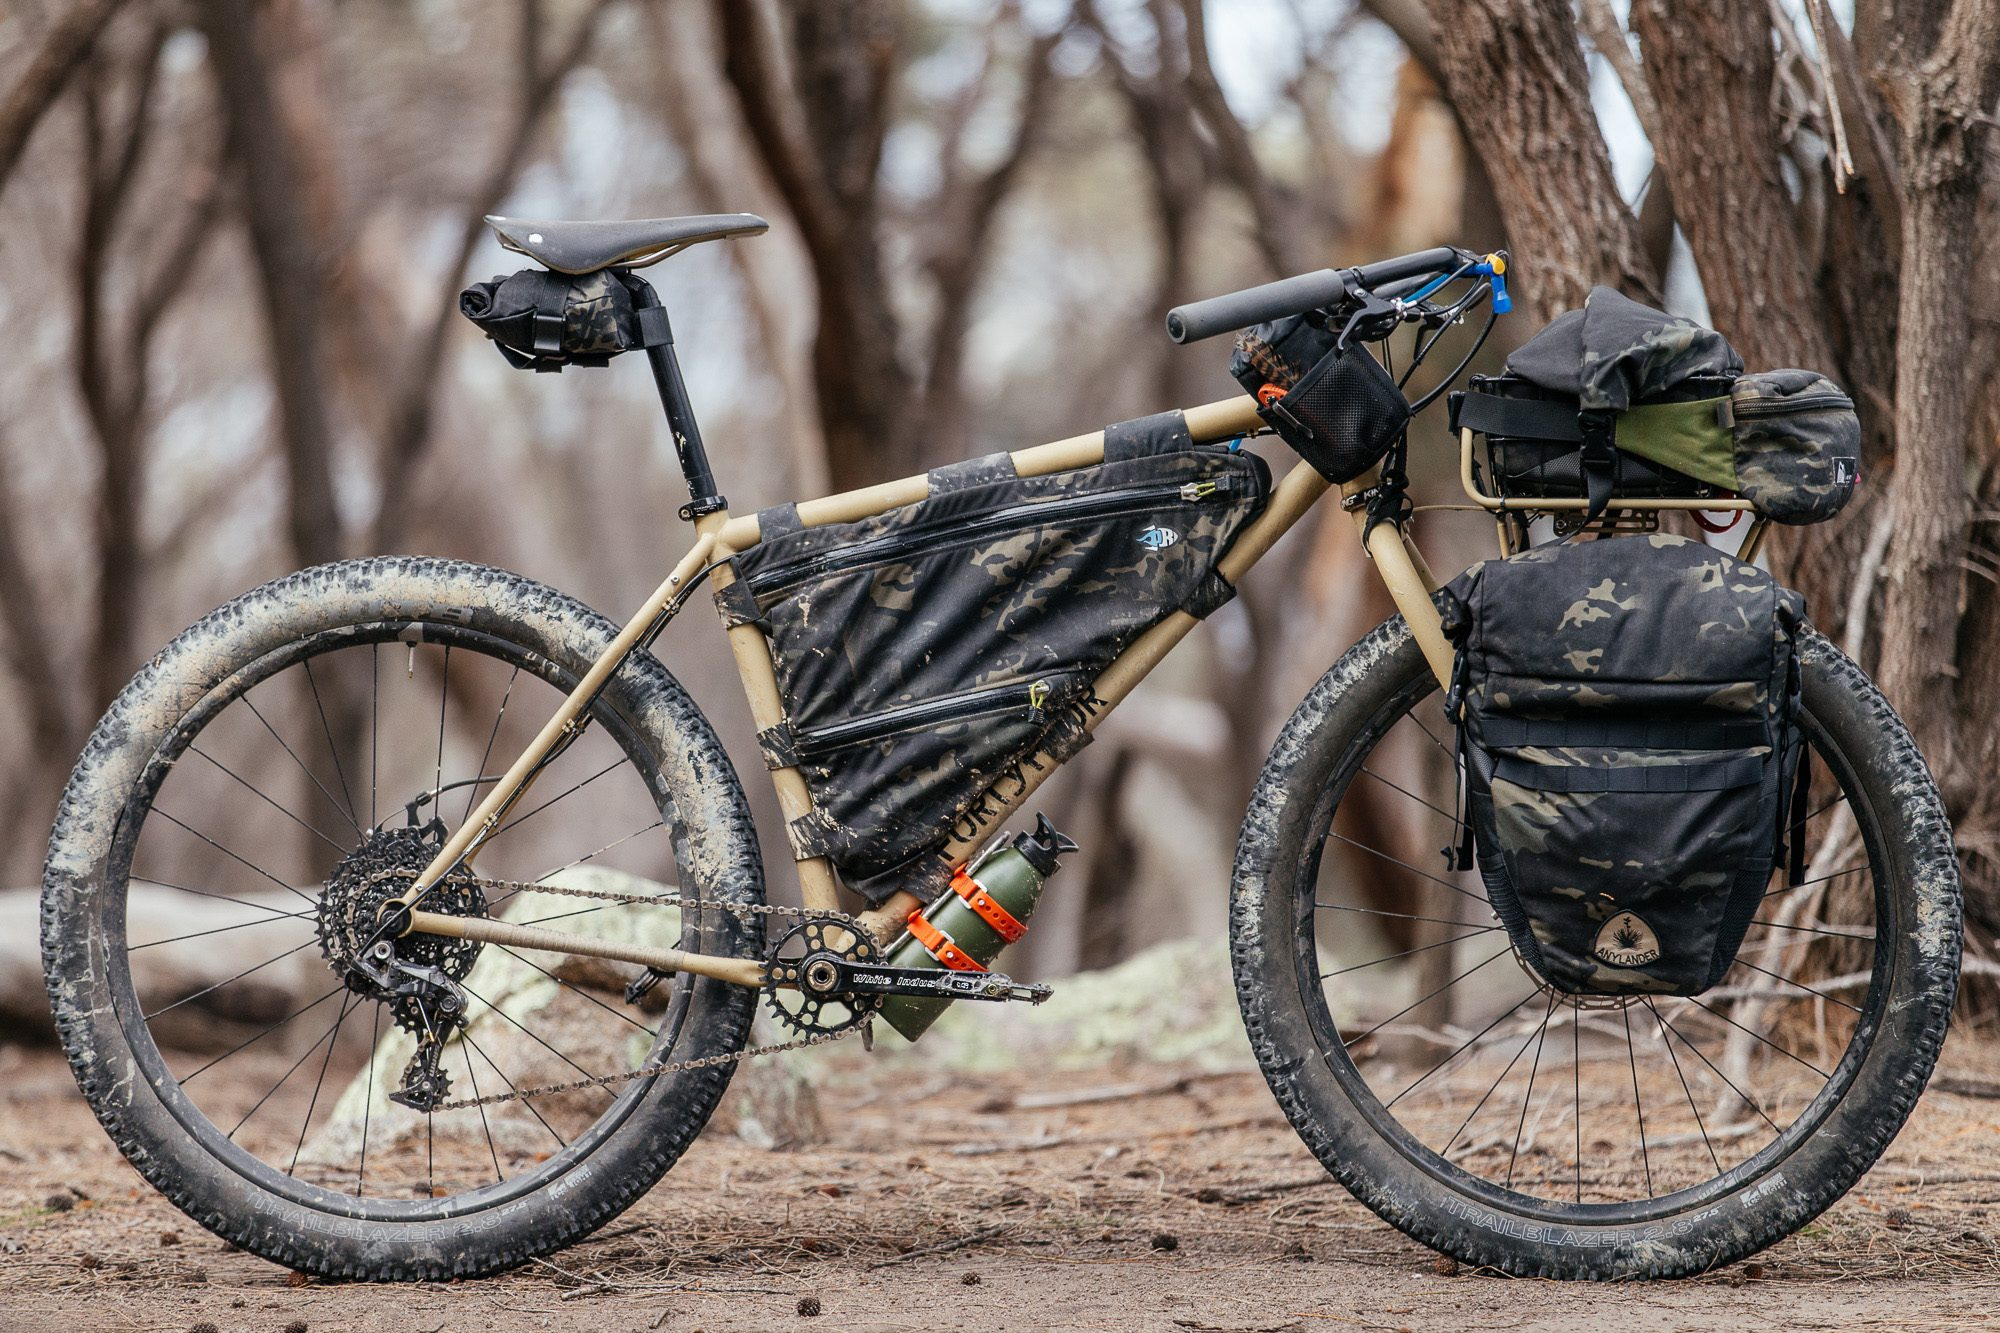 My Bush Blasted 44 Bikes Rigid MTB Tourer